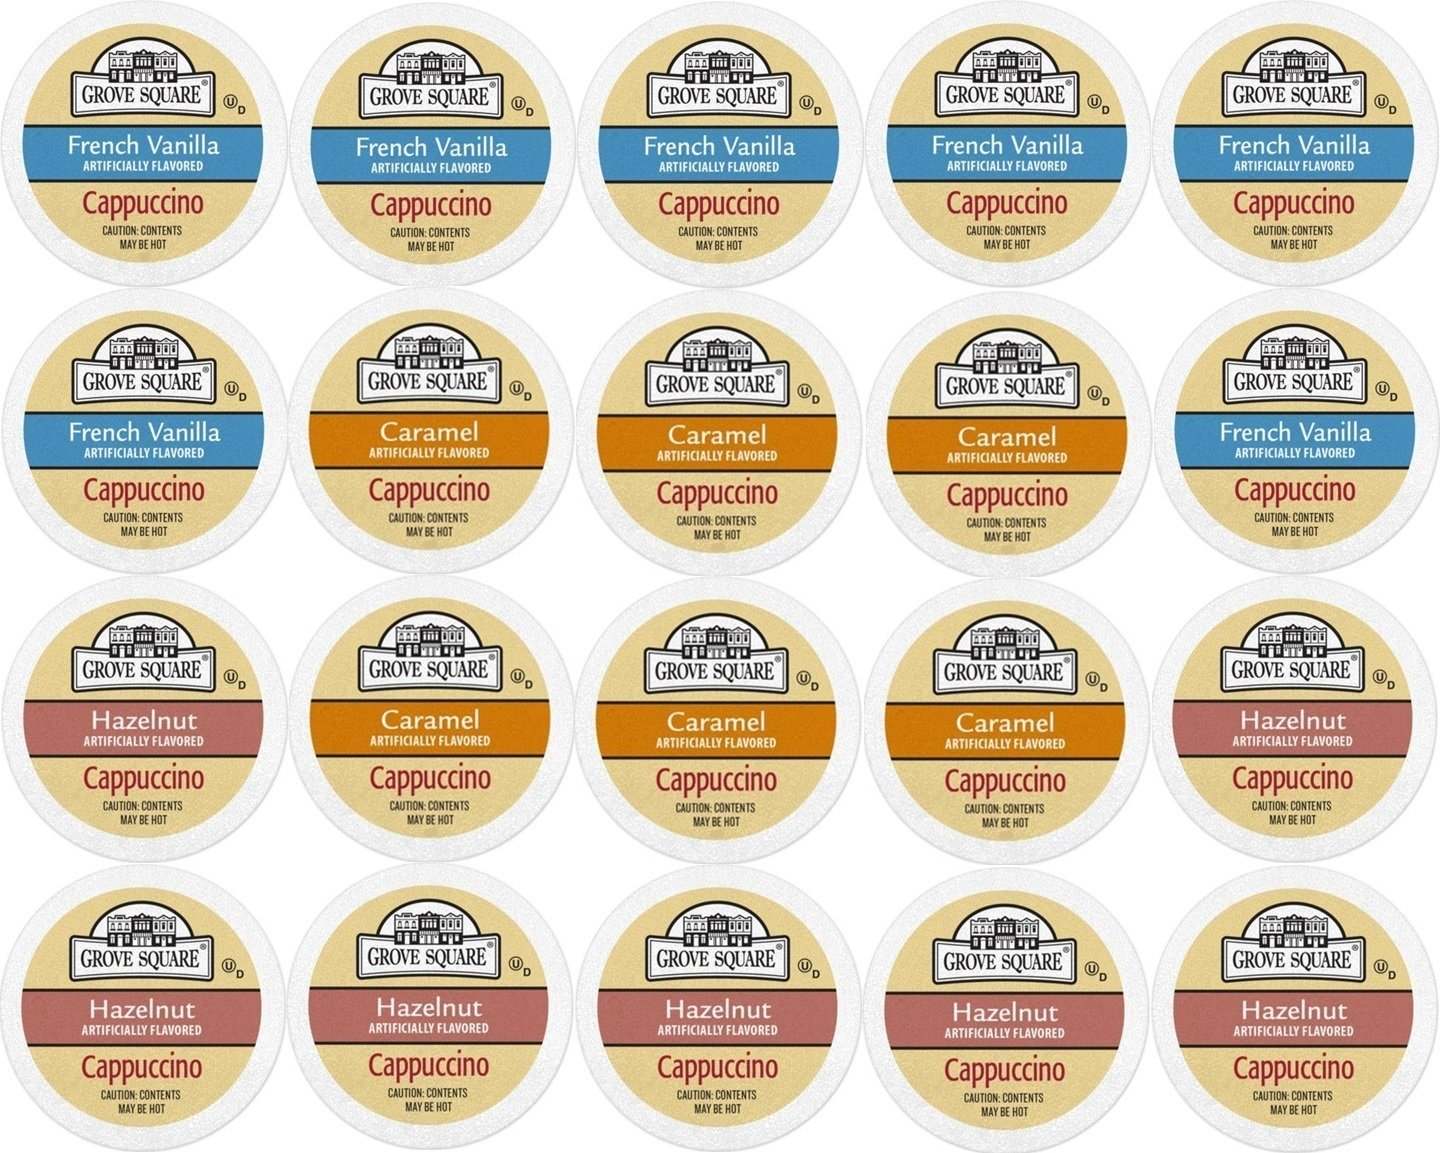 20-count Single Serve Cups for Keurig K-Cup Brewers Grove Square Cappuccino Variety Pack Featuring French Vanilla, Hazelnut, and Caramel Cups